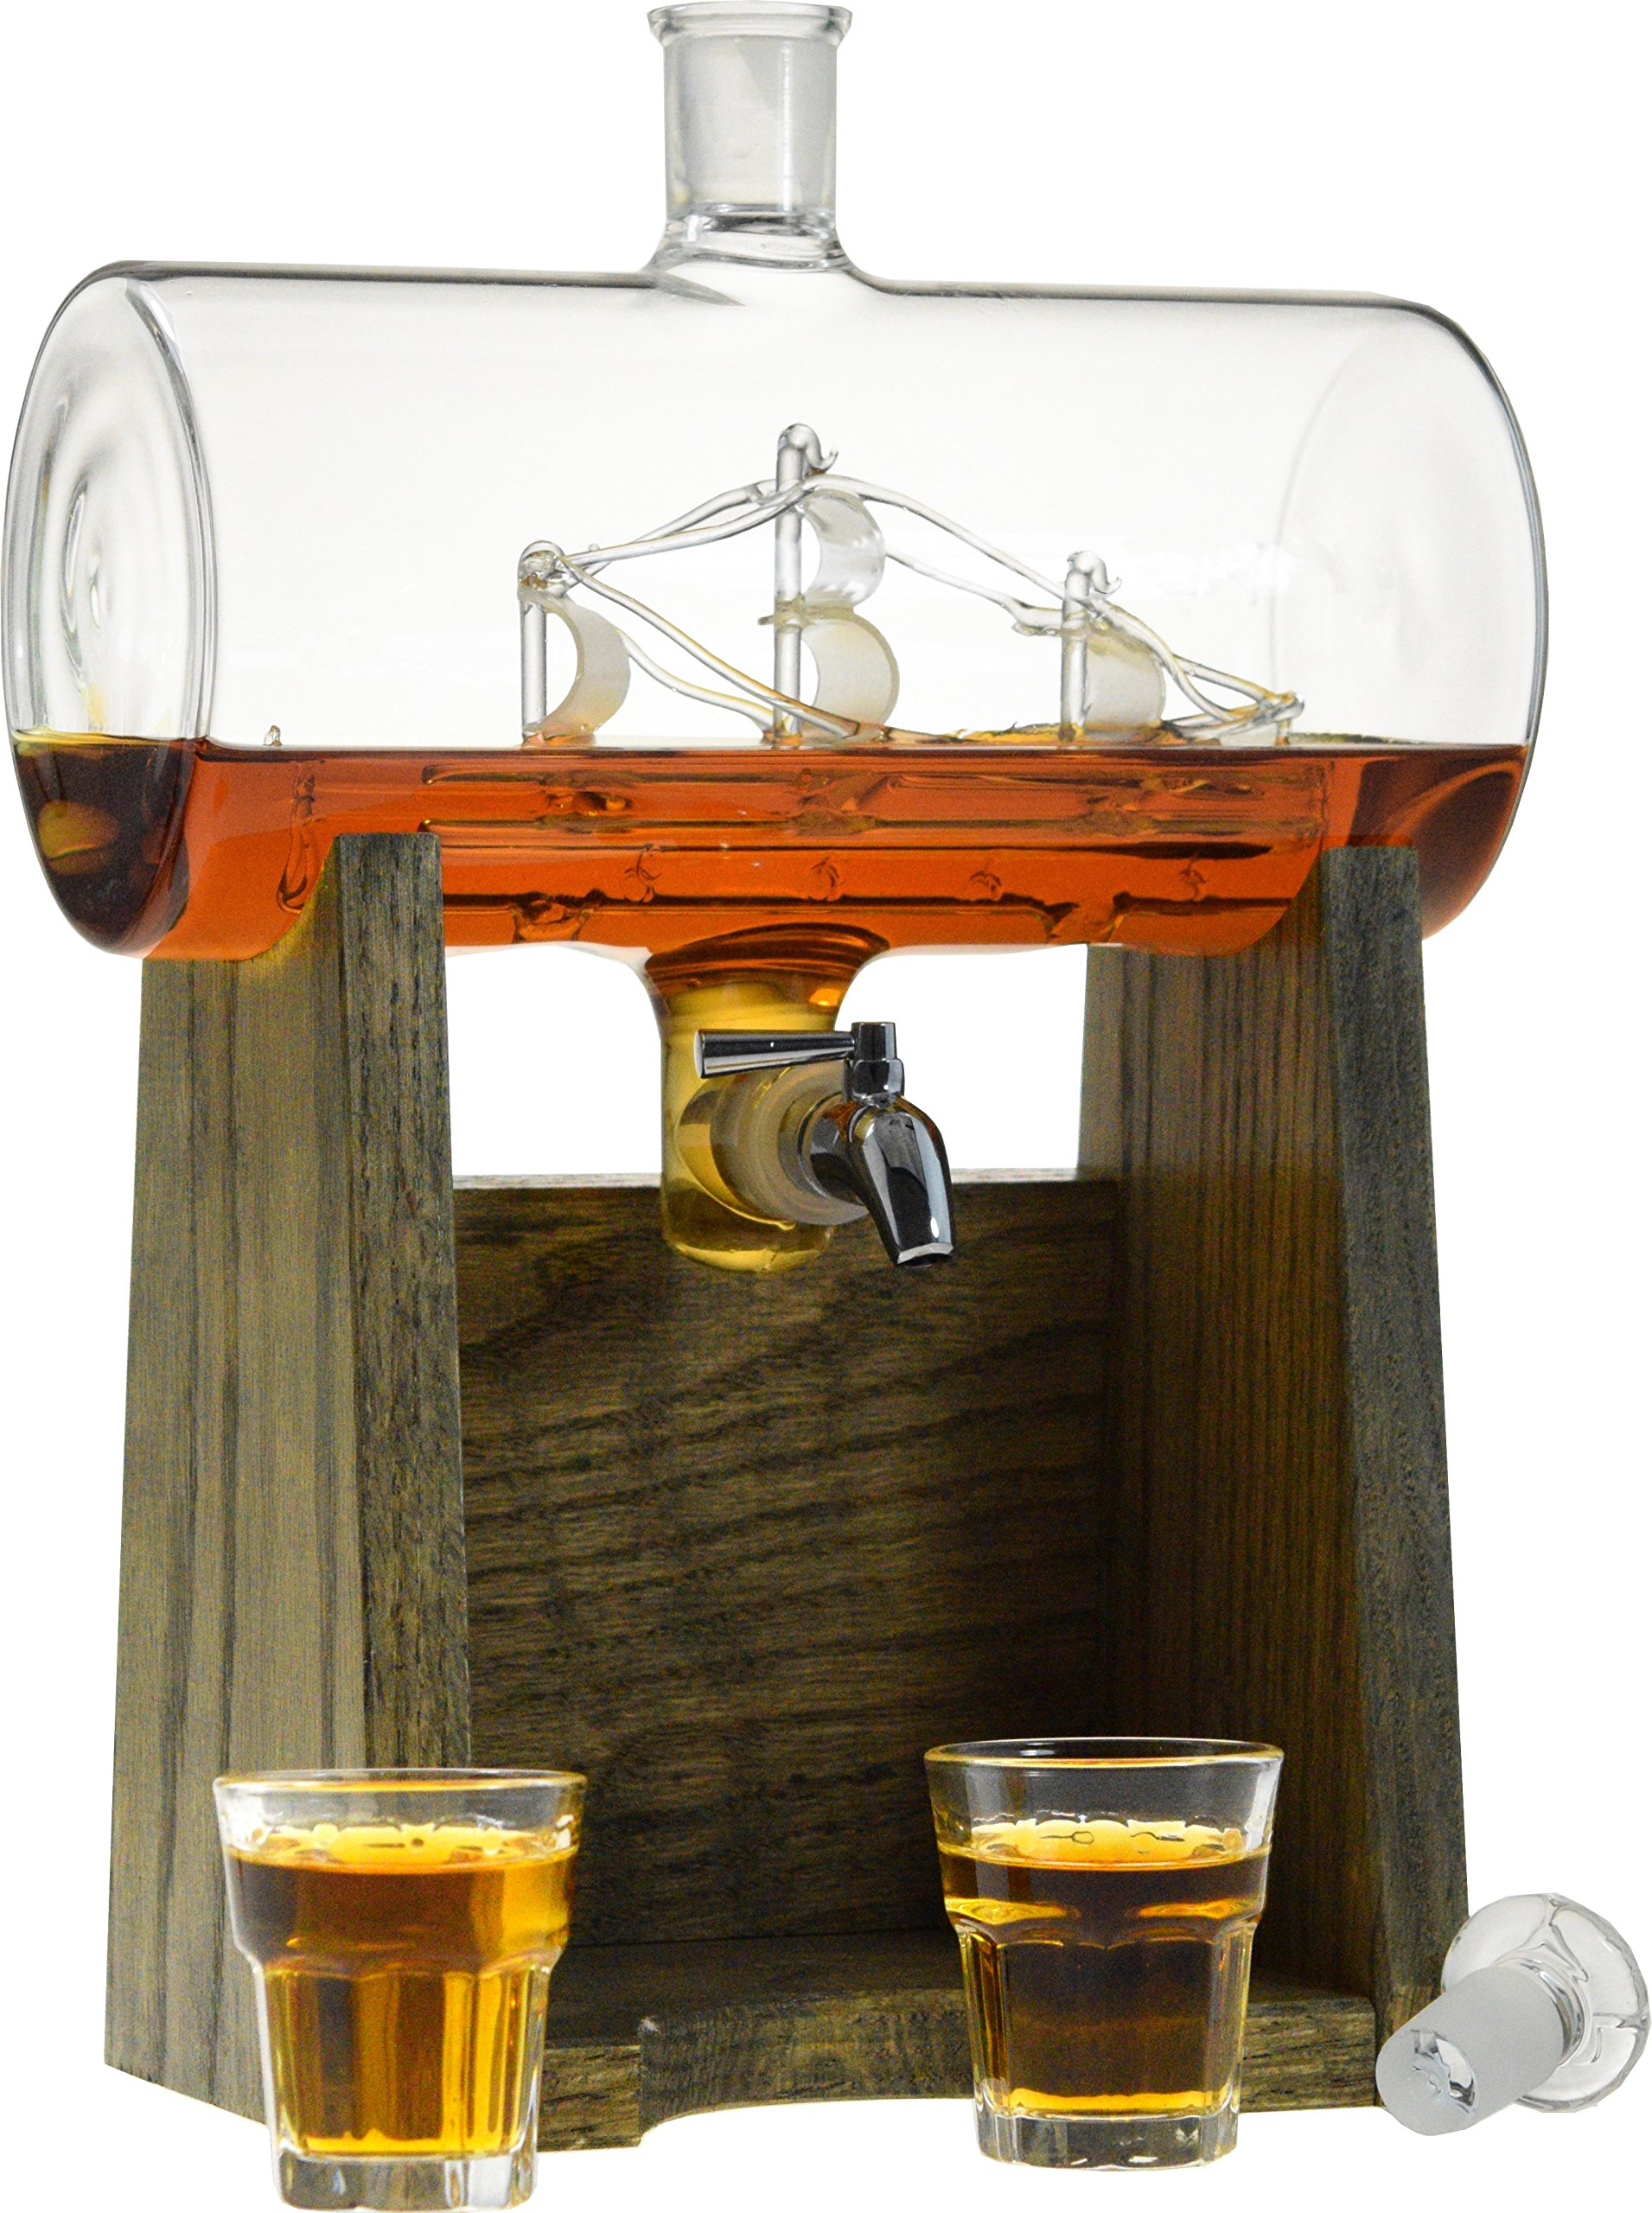 Liquor Decanter – Scotch Whiskey Decanter - 1150ml Dispenser for Alcohol - Vodka, Bourbon, Rum, Wine, Whiskey, Tequila or Even Mouthwash - Glass (Constellation1797 from Prestige Decanters)